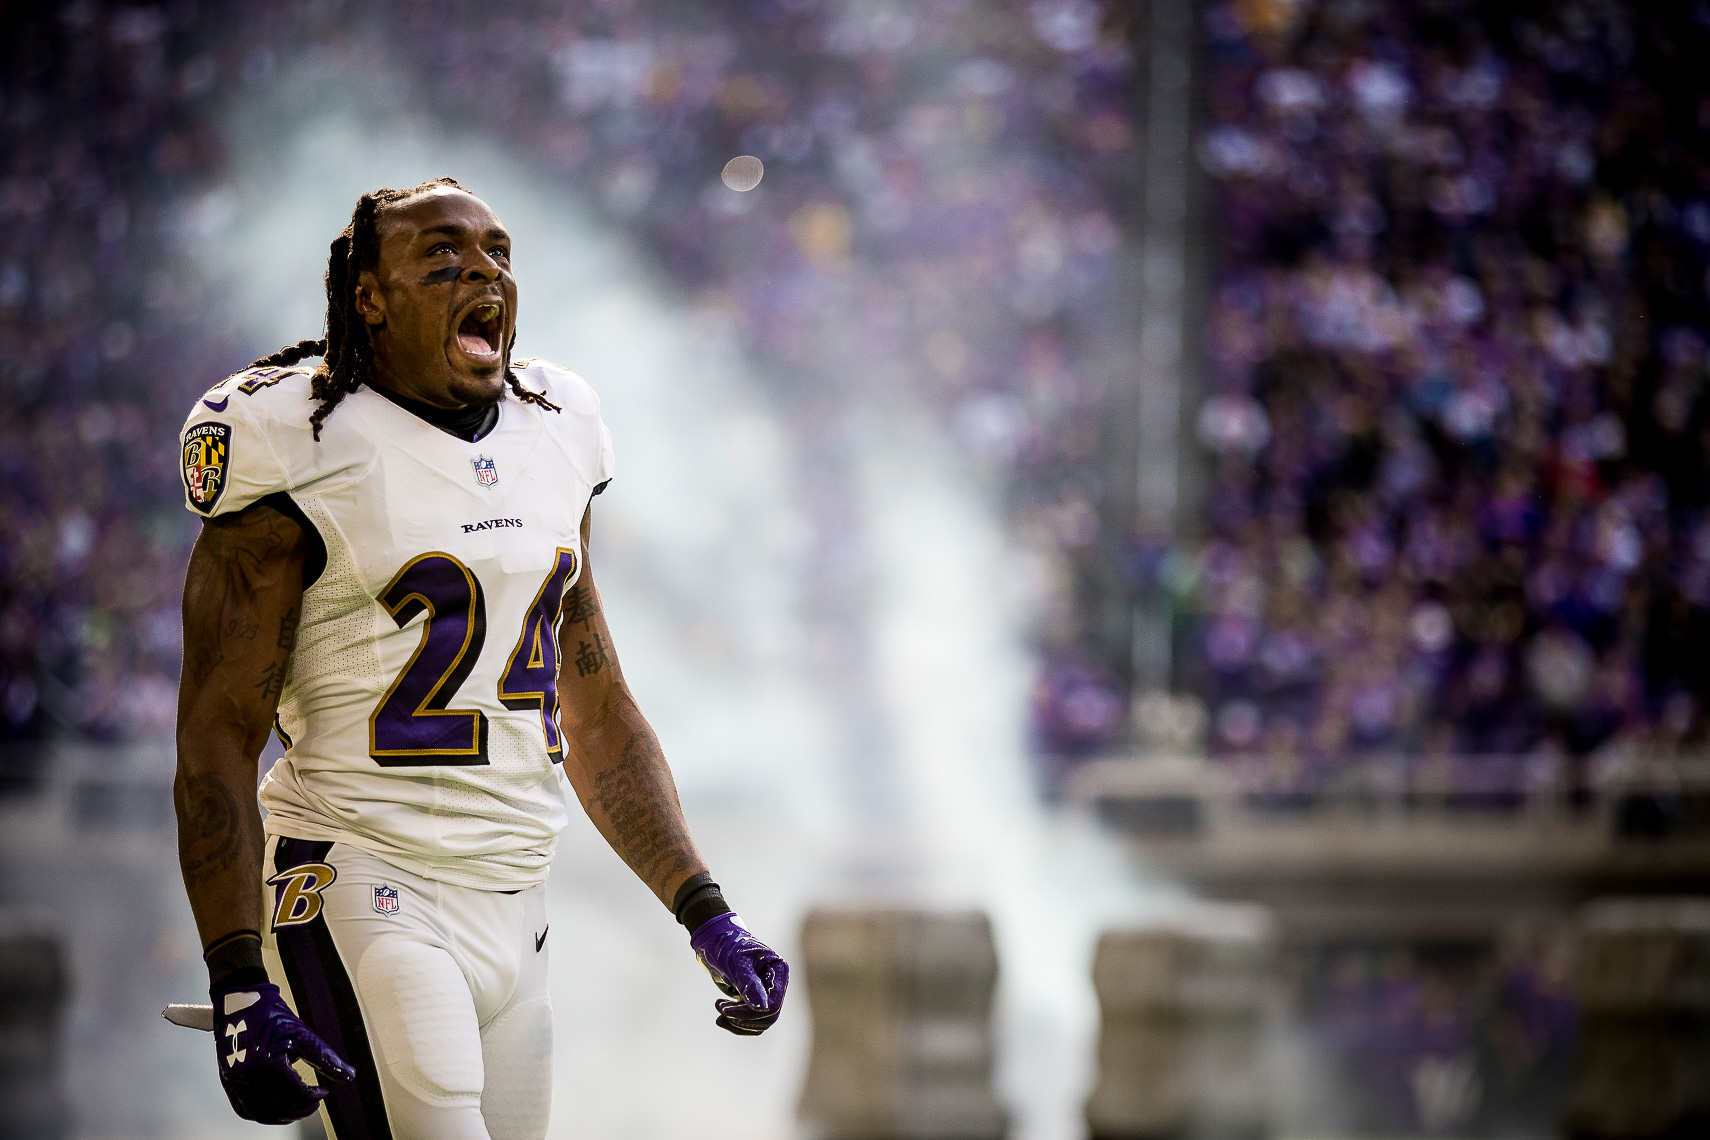 ravens16  NFL Baltimore Ravens photos NFL behind the scenes documentary sports photographer photo of Brandon Carr